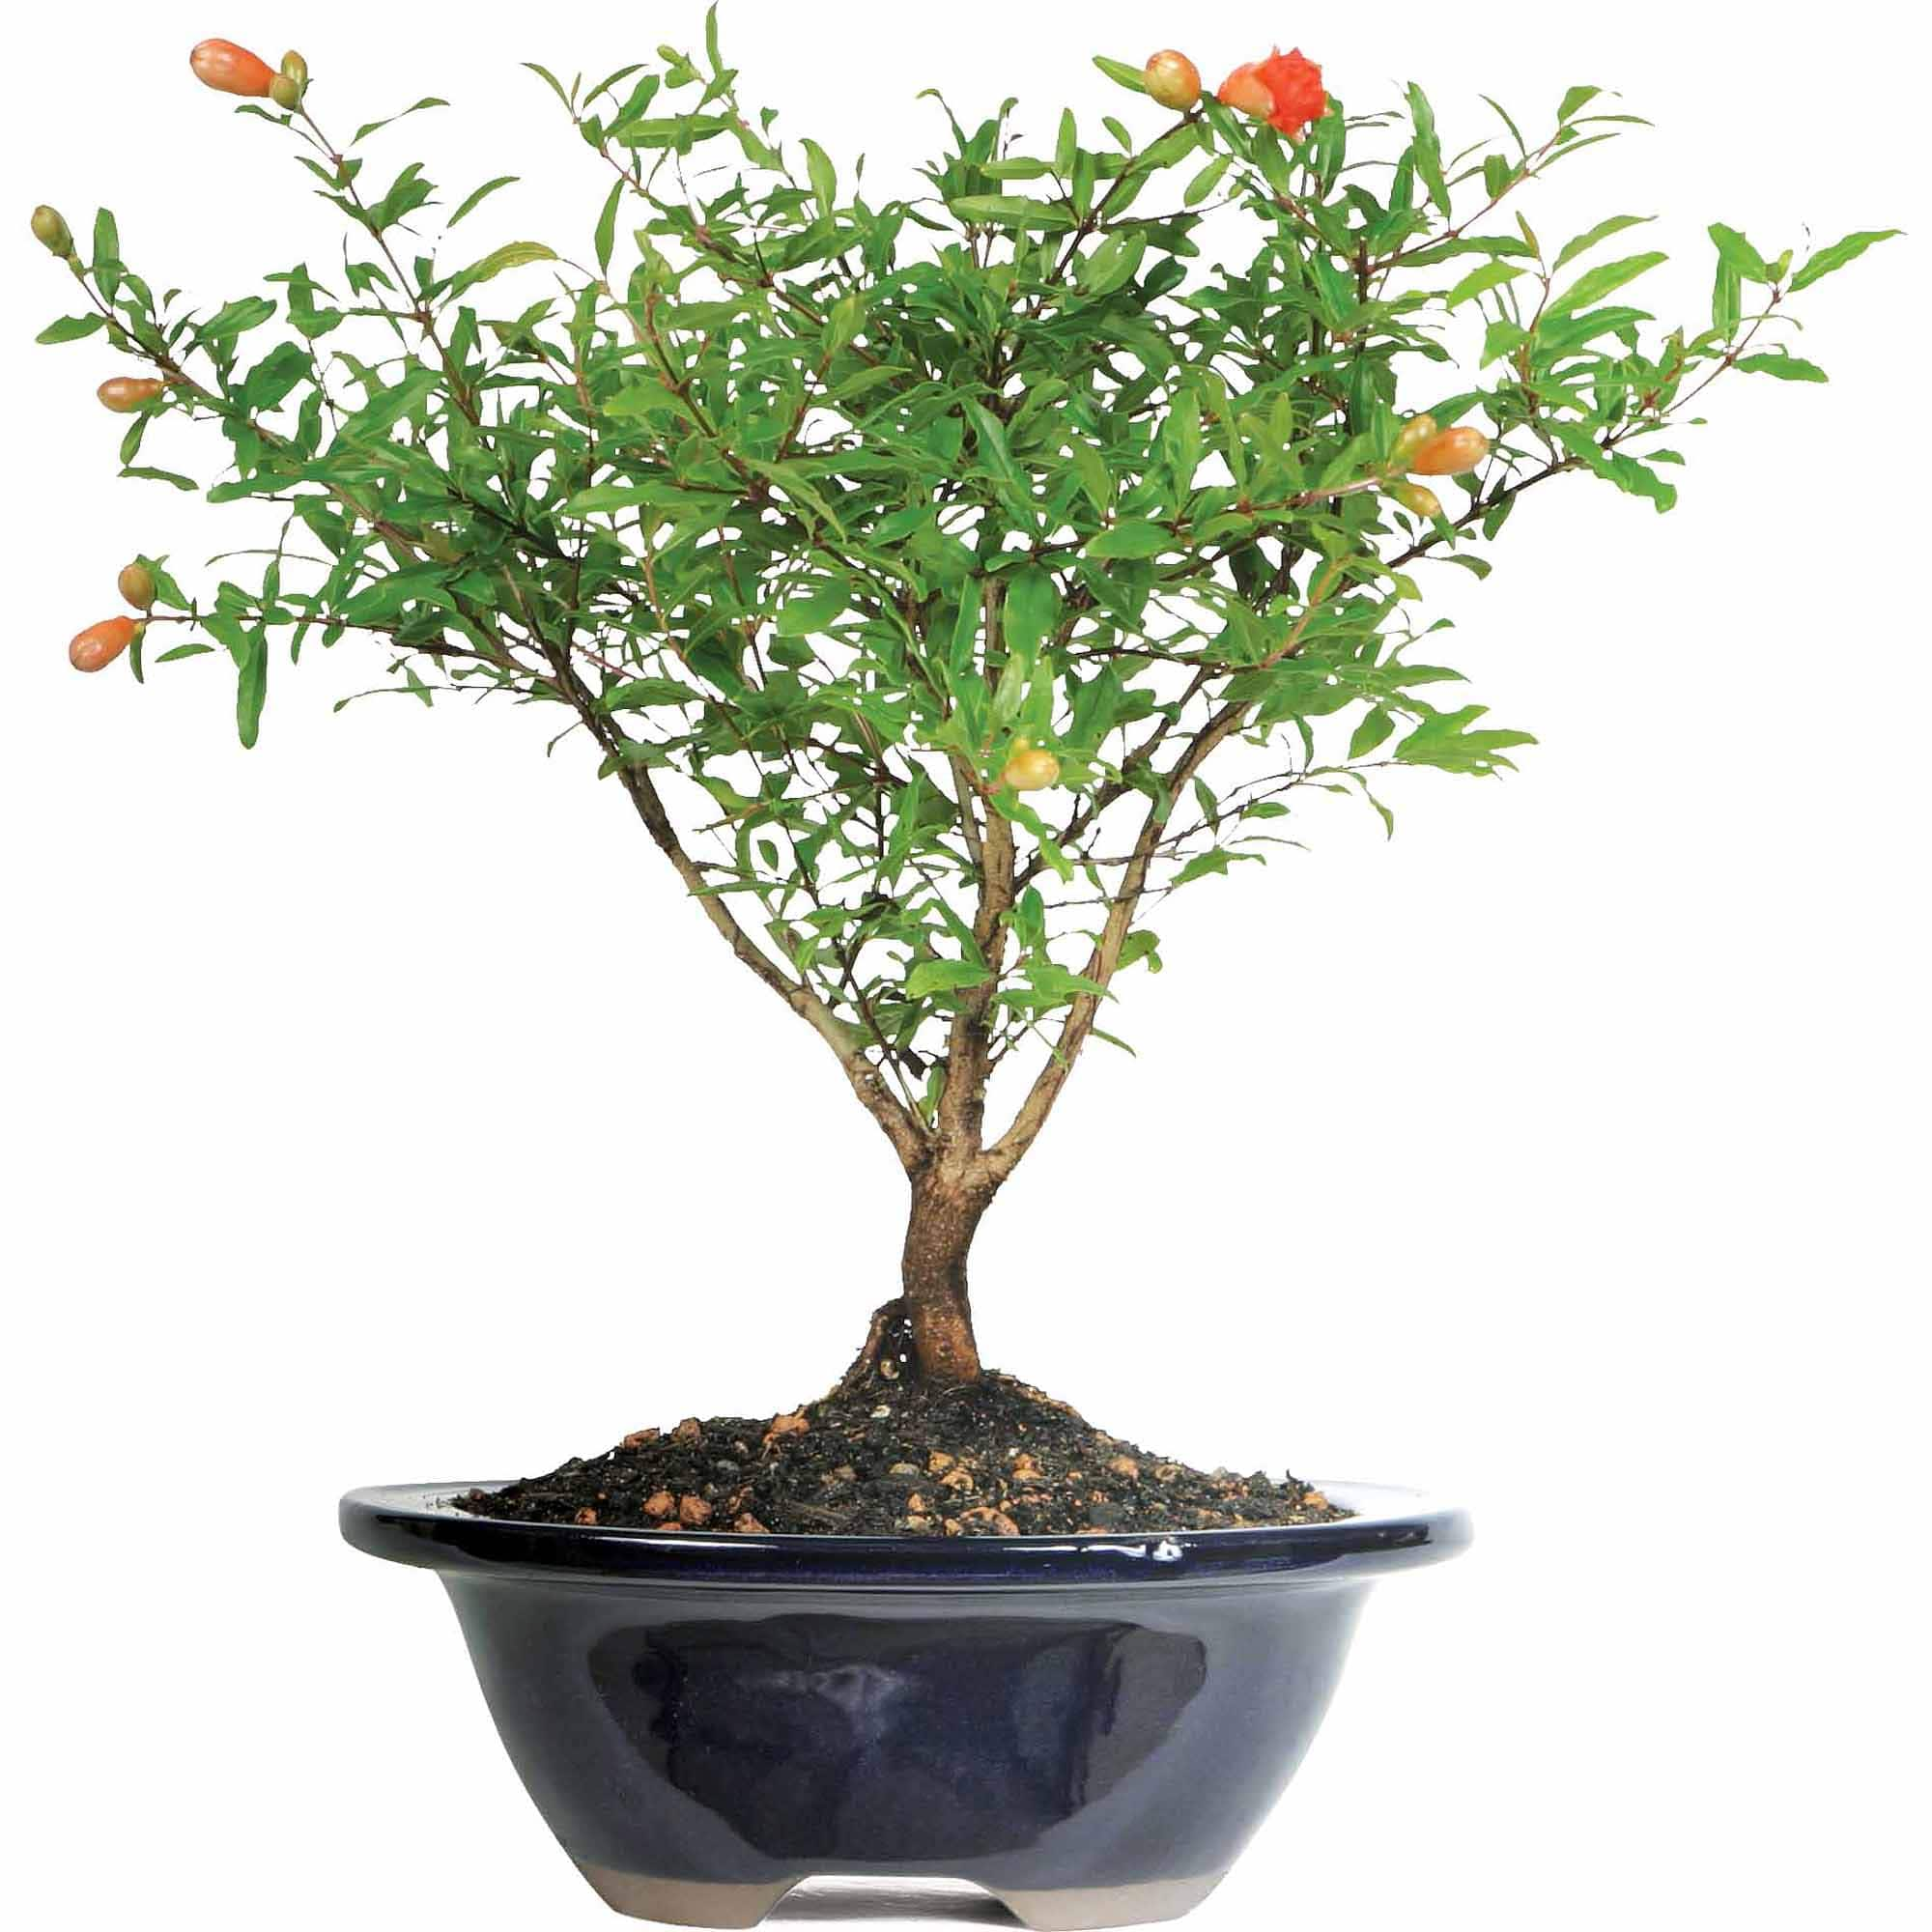 Pomegranate Bonsai Tree $24 + Free Store Pickup @ Walmart